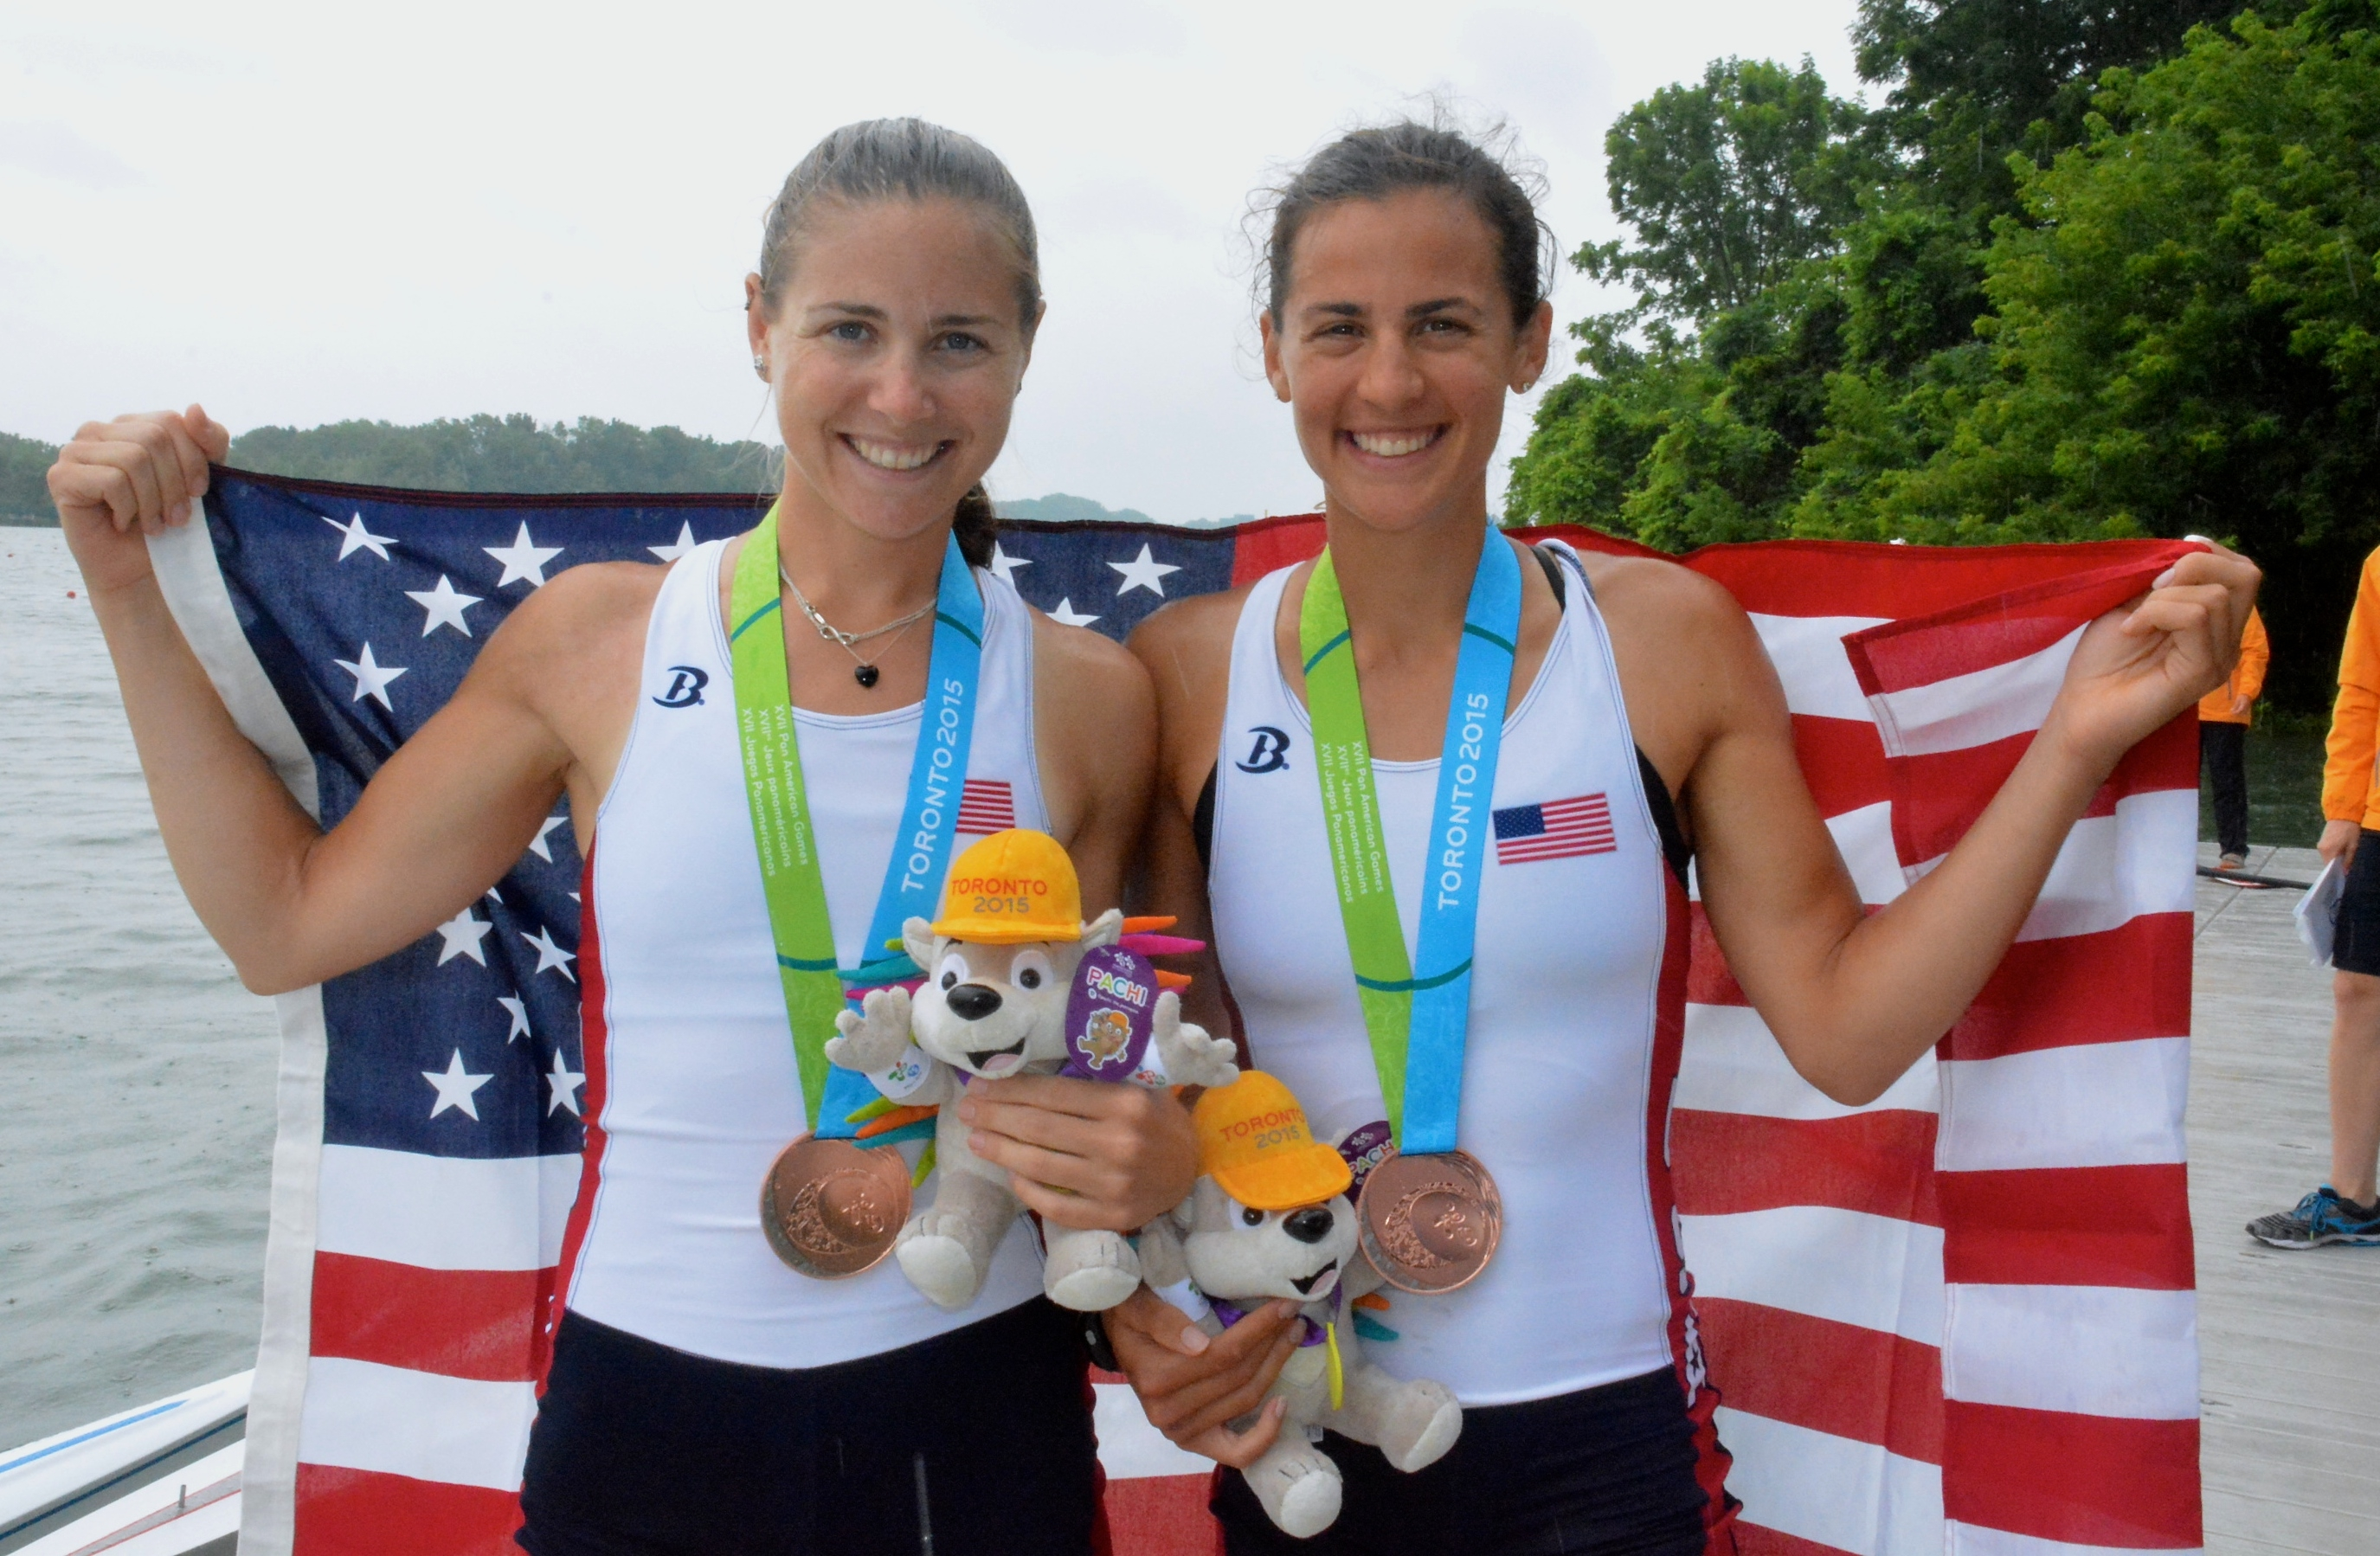 Buffalo native Sarah Giancola, right, celebrates her bronze medal Tuesday in the lightweight double sculls with partner Victoria Burke.